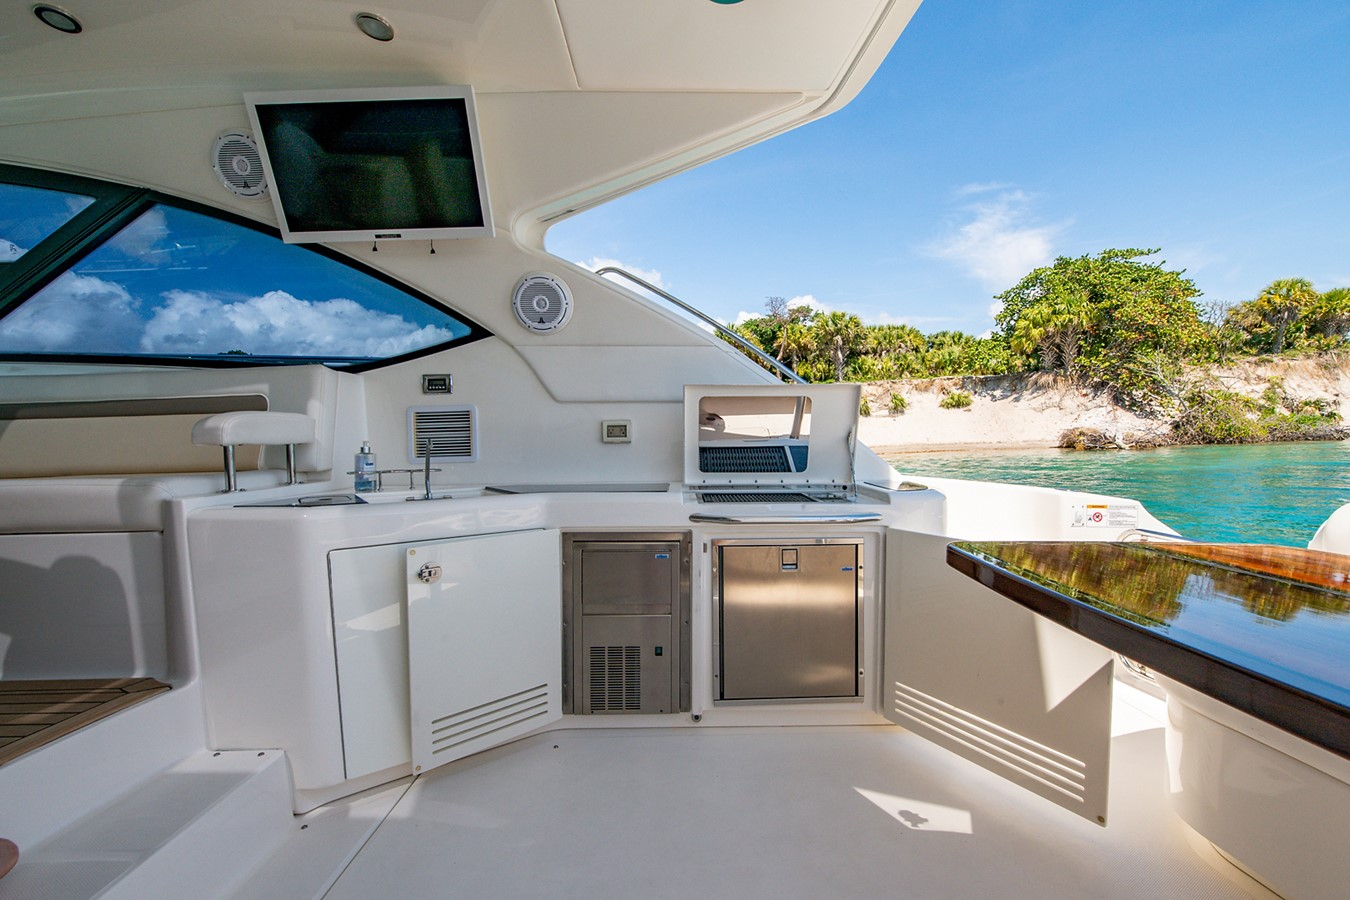 2013 SEA RAY Sundancer Motor Yacht 2531143